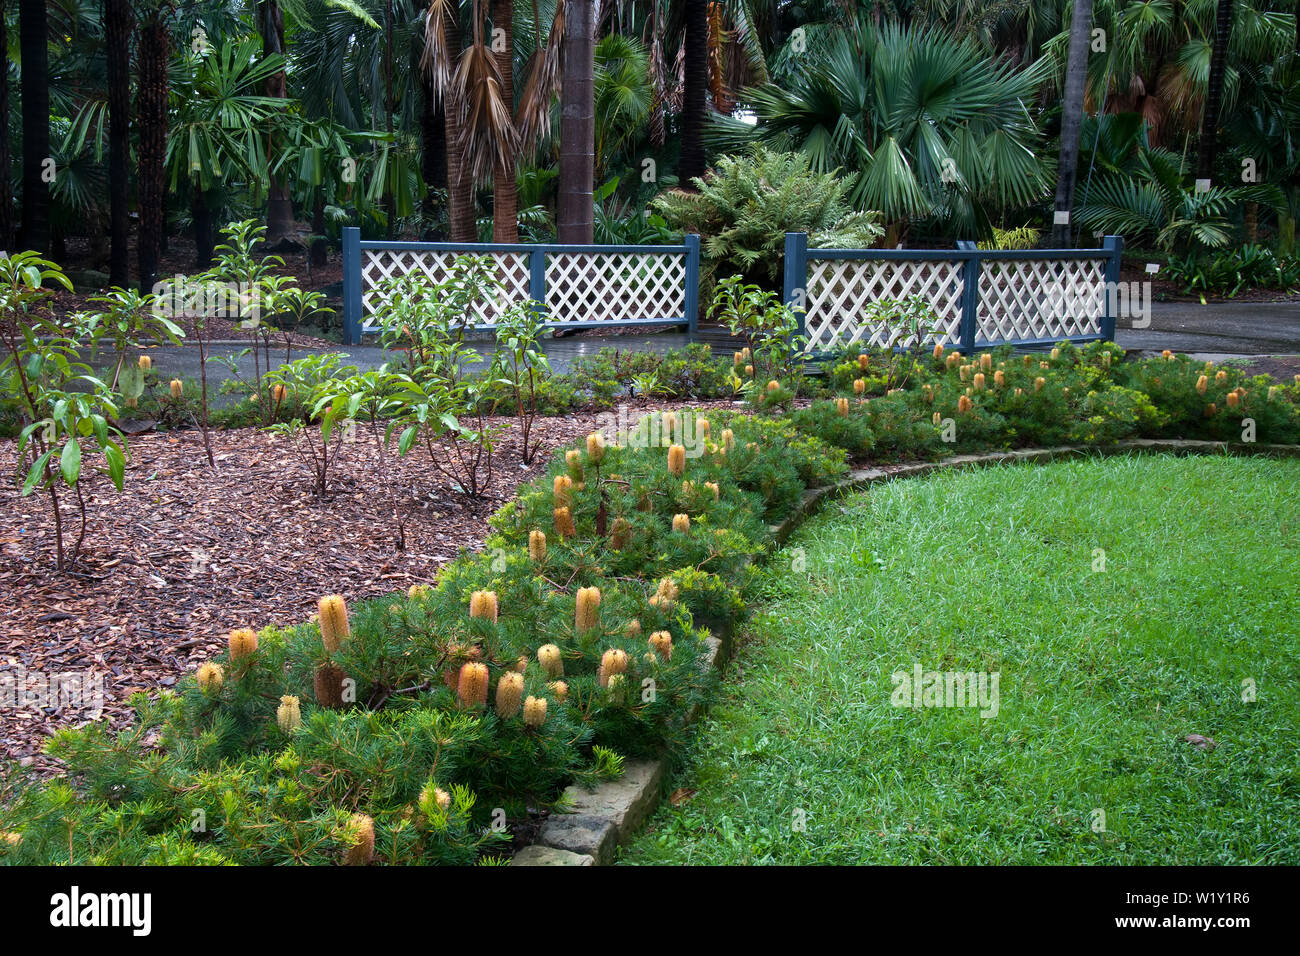 Sydney Australia, view of garden bed using a dwarf banksia as a border hedge - Stock Image